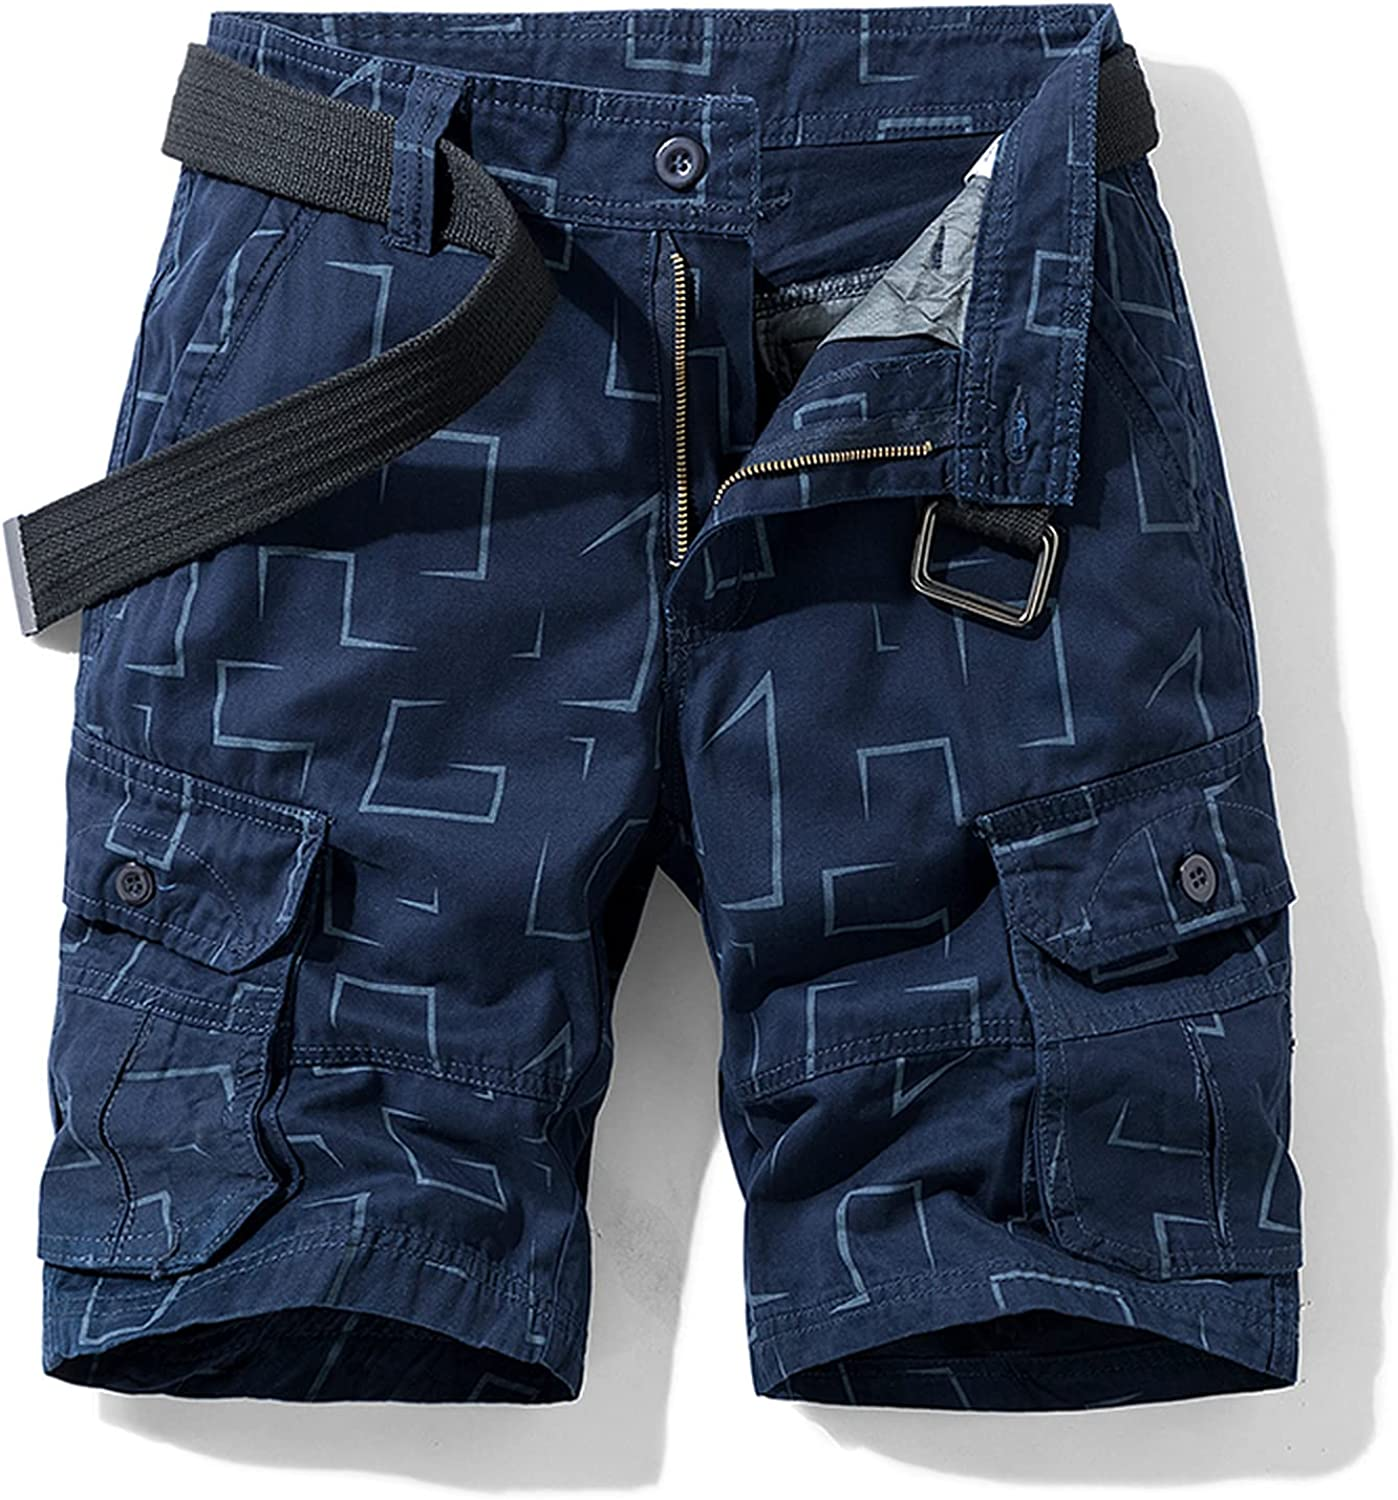 B dressy New Summer Cargo Shorts Men Camouflage Cotton Khaki Loose Casual Outwear Overalls-Blue-2-36